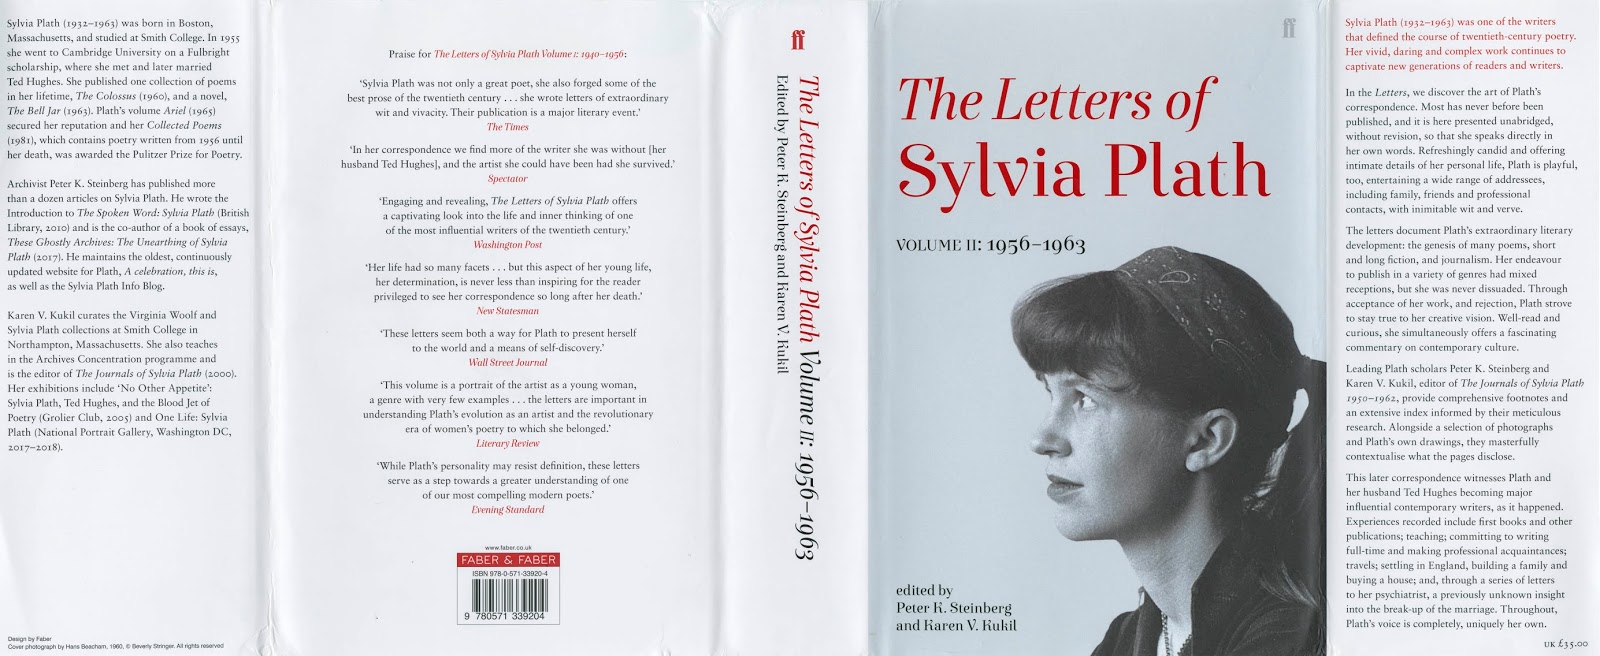 sylvia plath research papers Sylvia plath term papers available at planetpaperscom, the largest free term paper community.